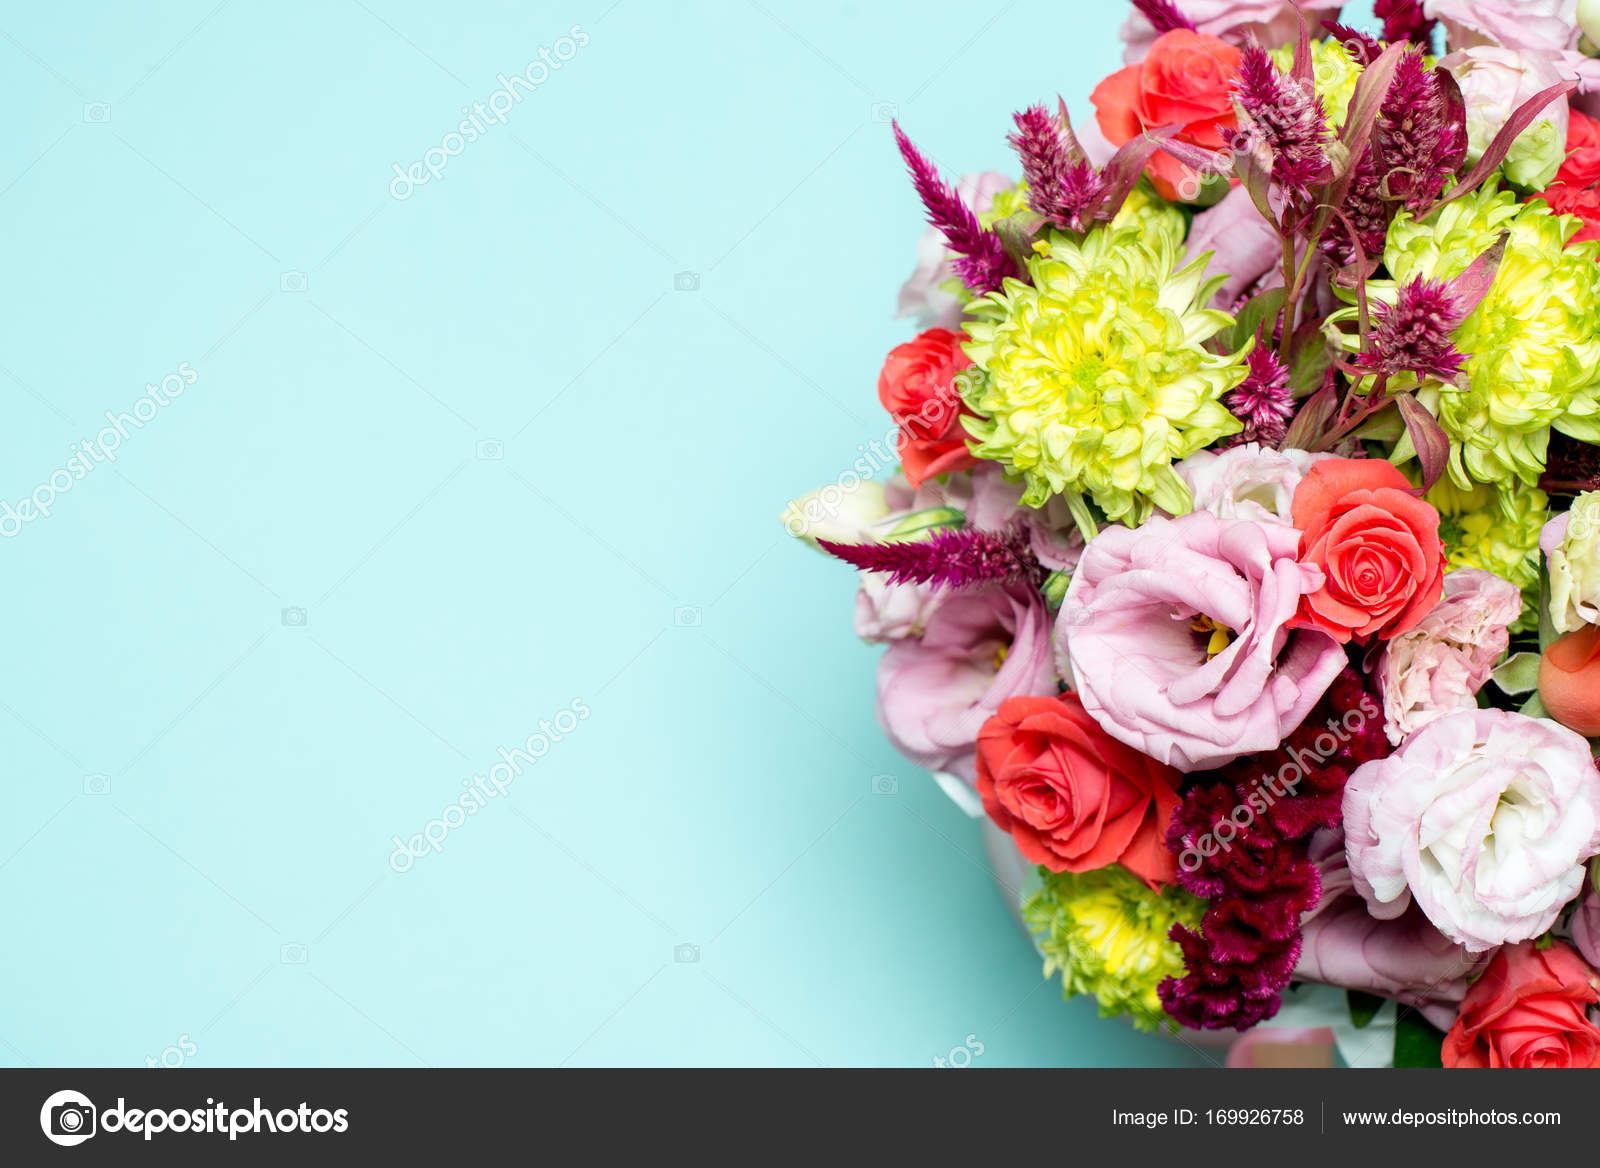 Beautiful floral arrangement pink and red rose pink eustoma beautiful floral arrangement pink and red rose pink eustoma yellow chrysanthemum stock izmirmasajfo